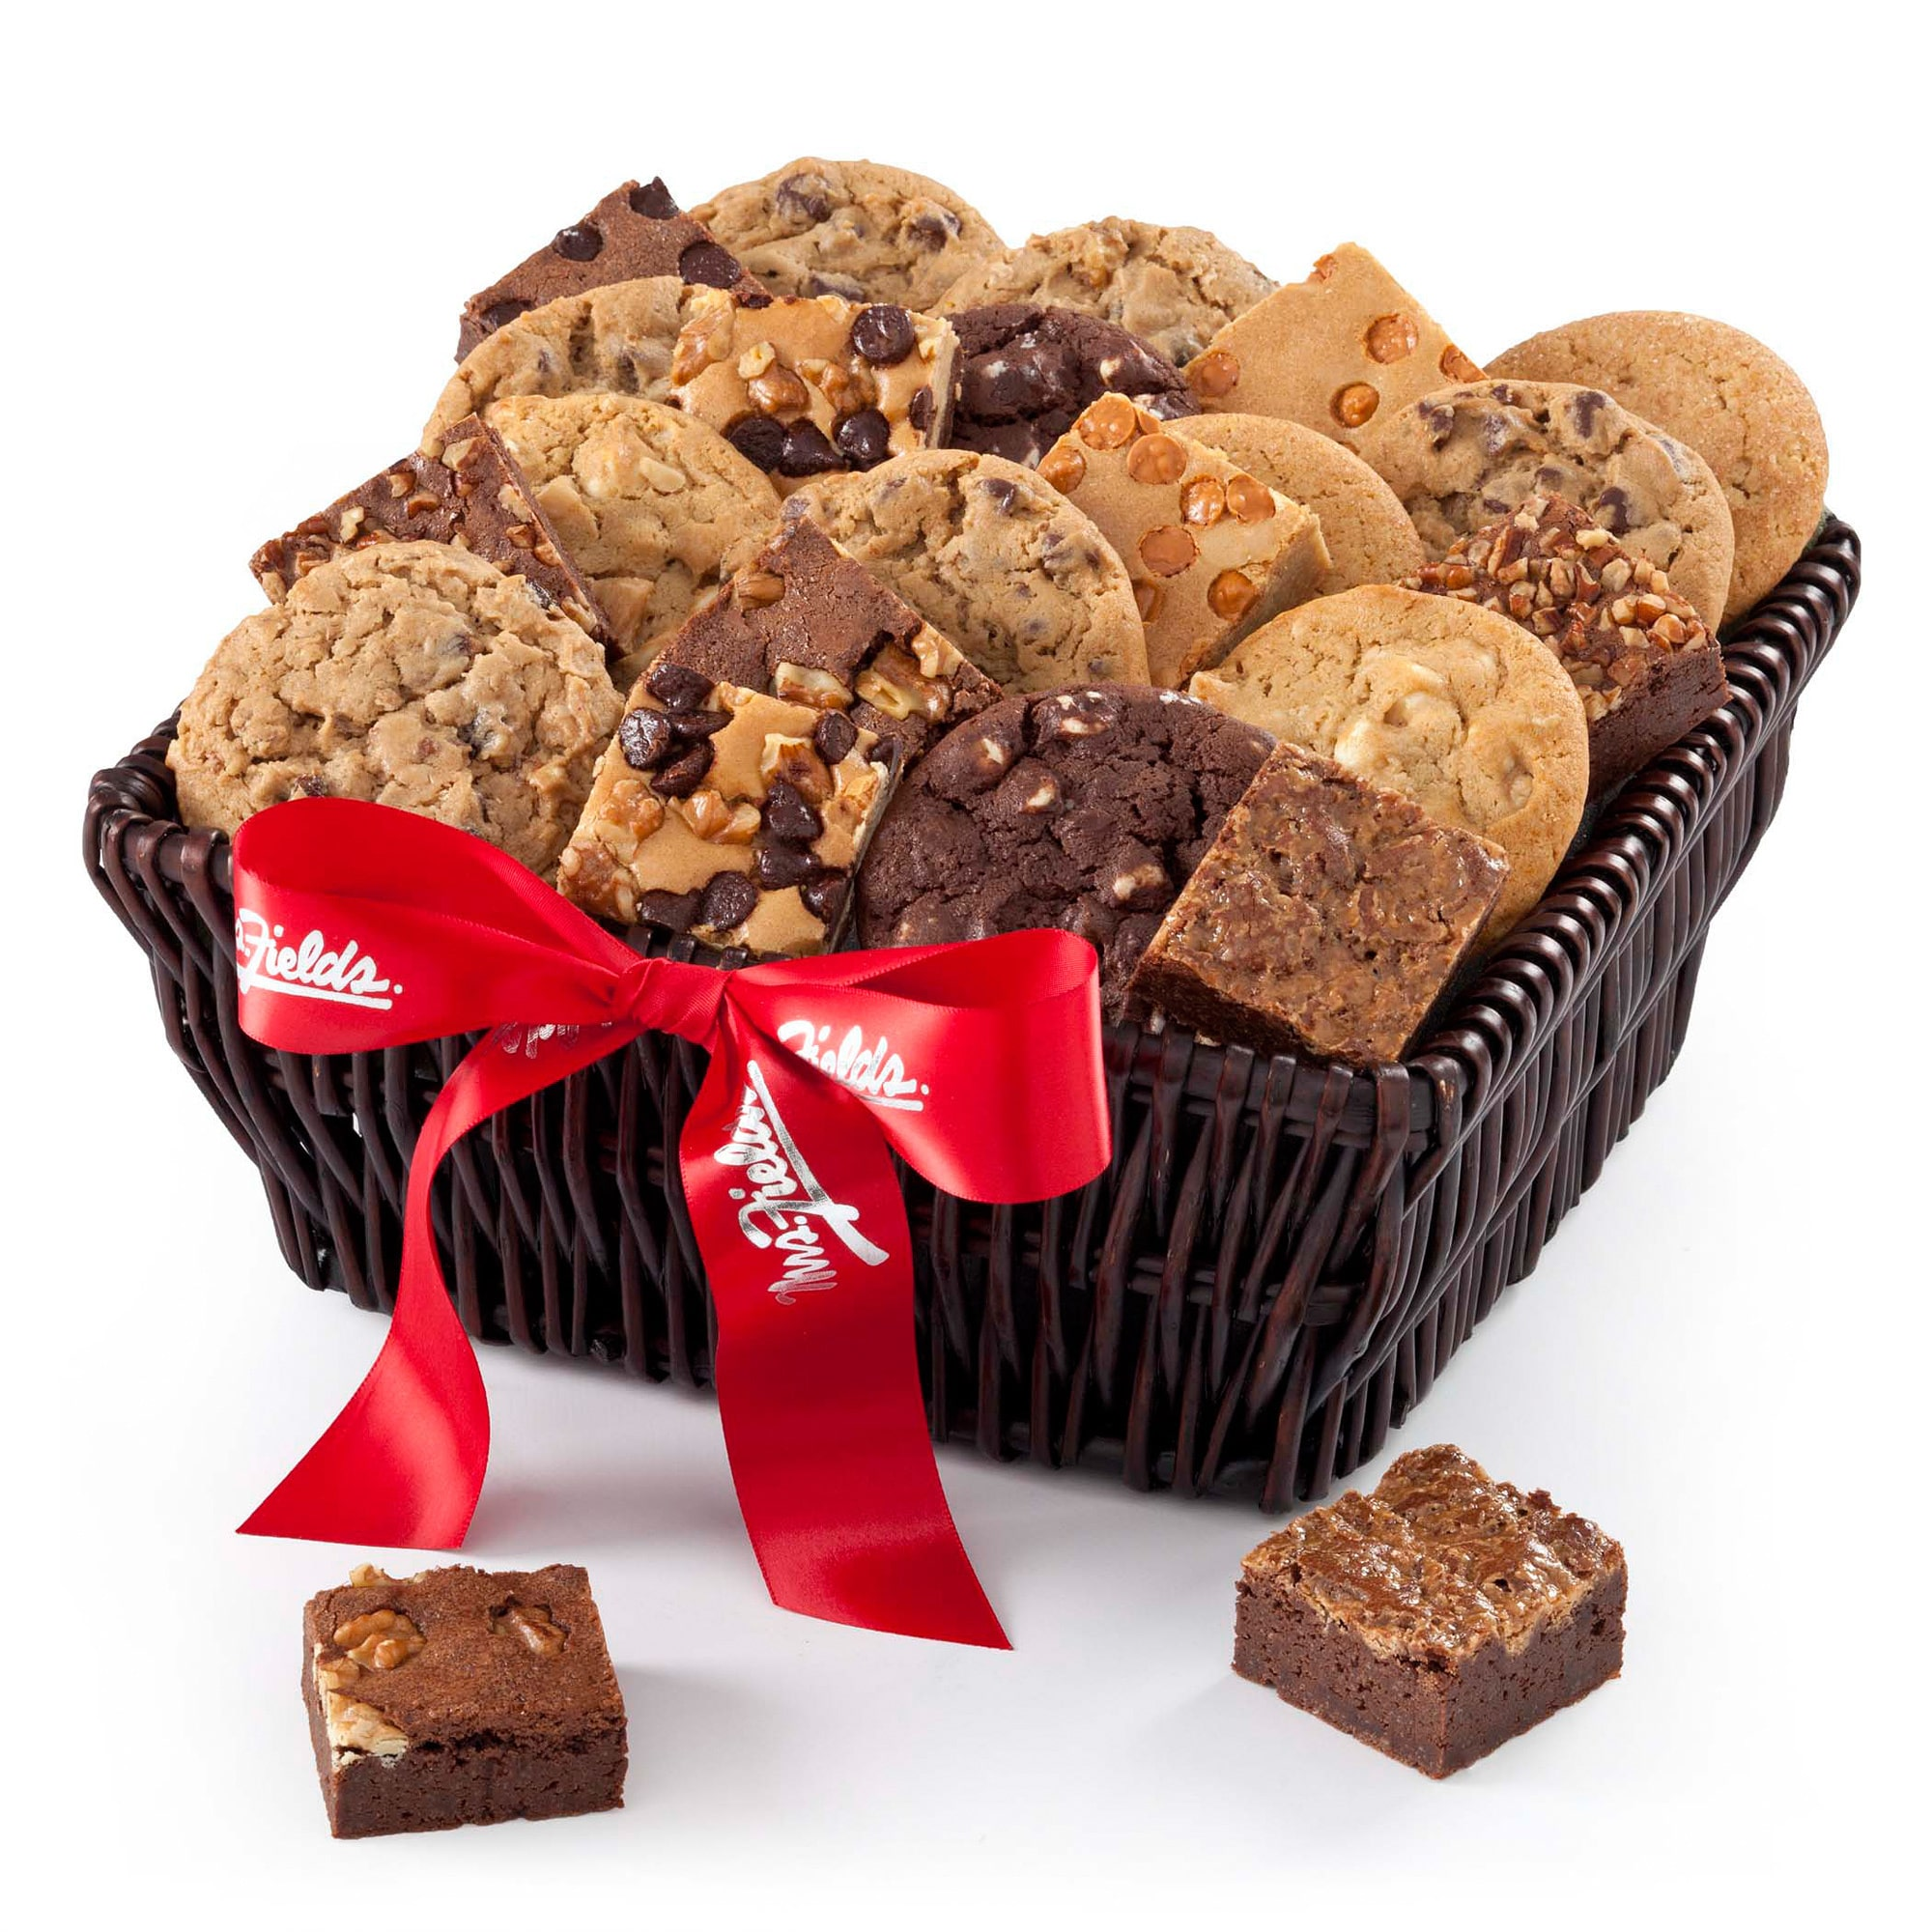 Mrs. FIelds Fresh Baked 12 Cookies and Brownies Galore Basket with Bow by Overstock